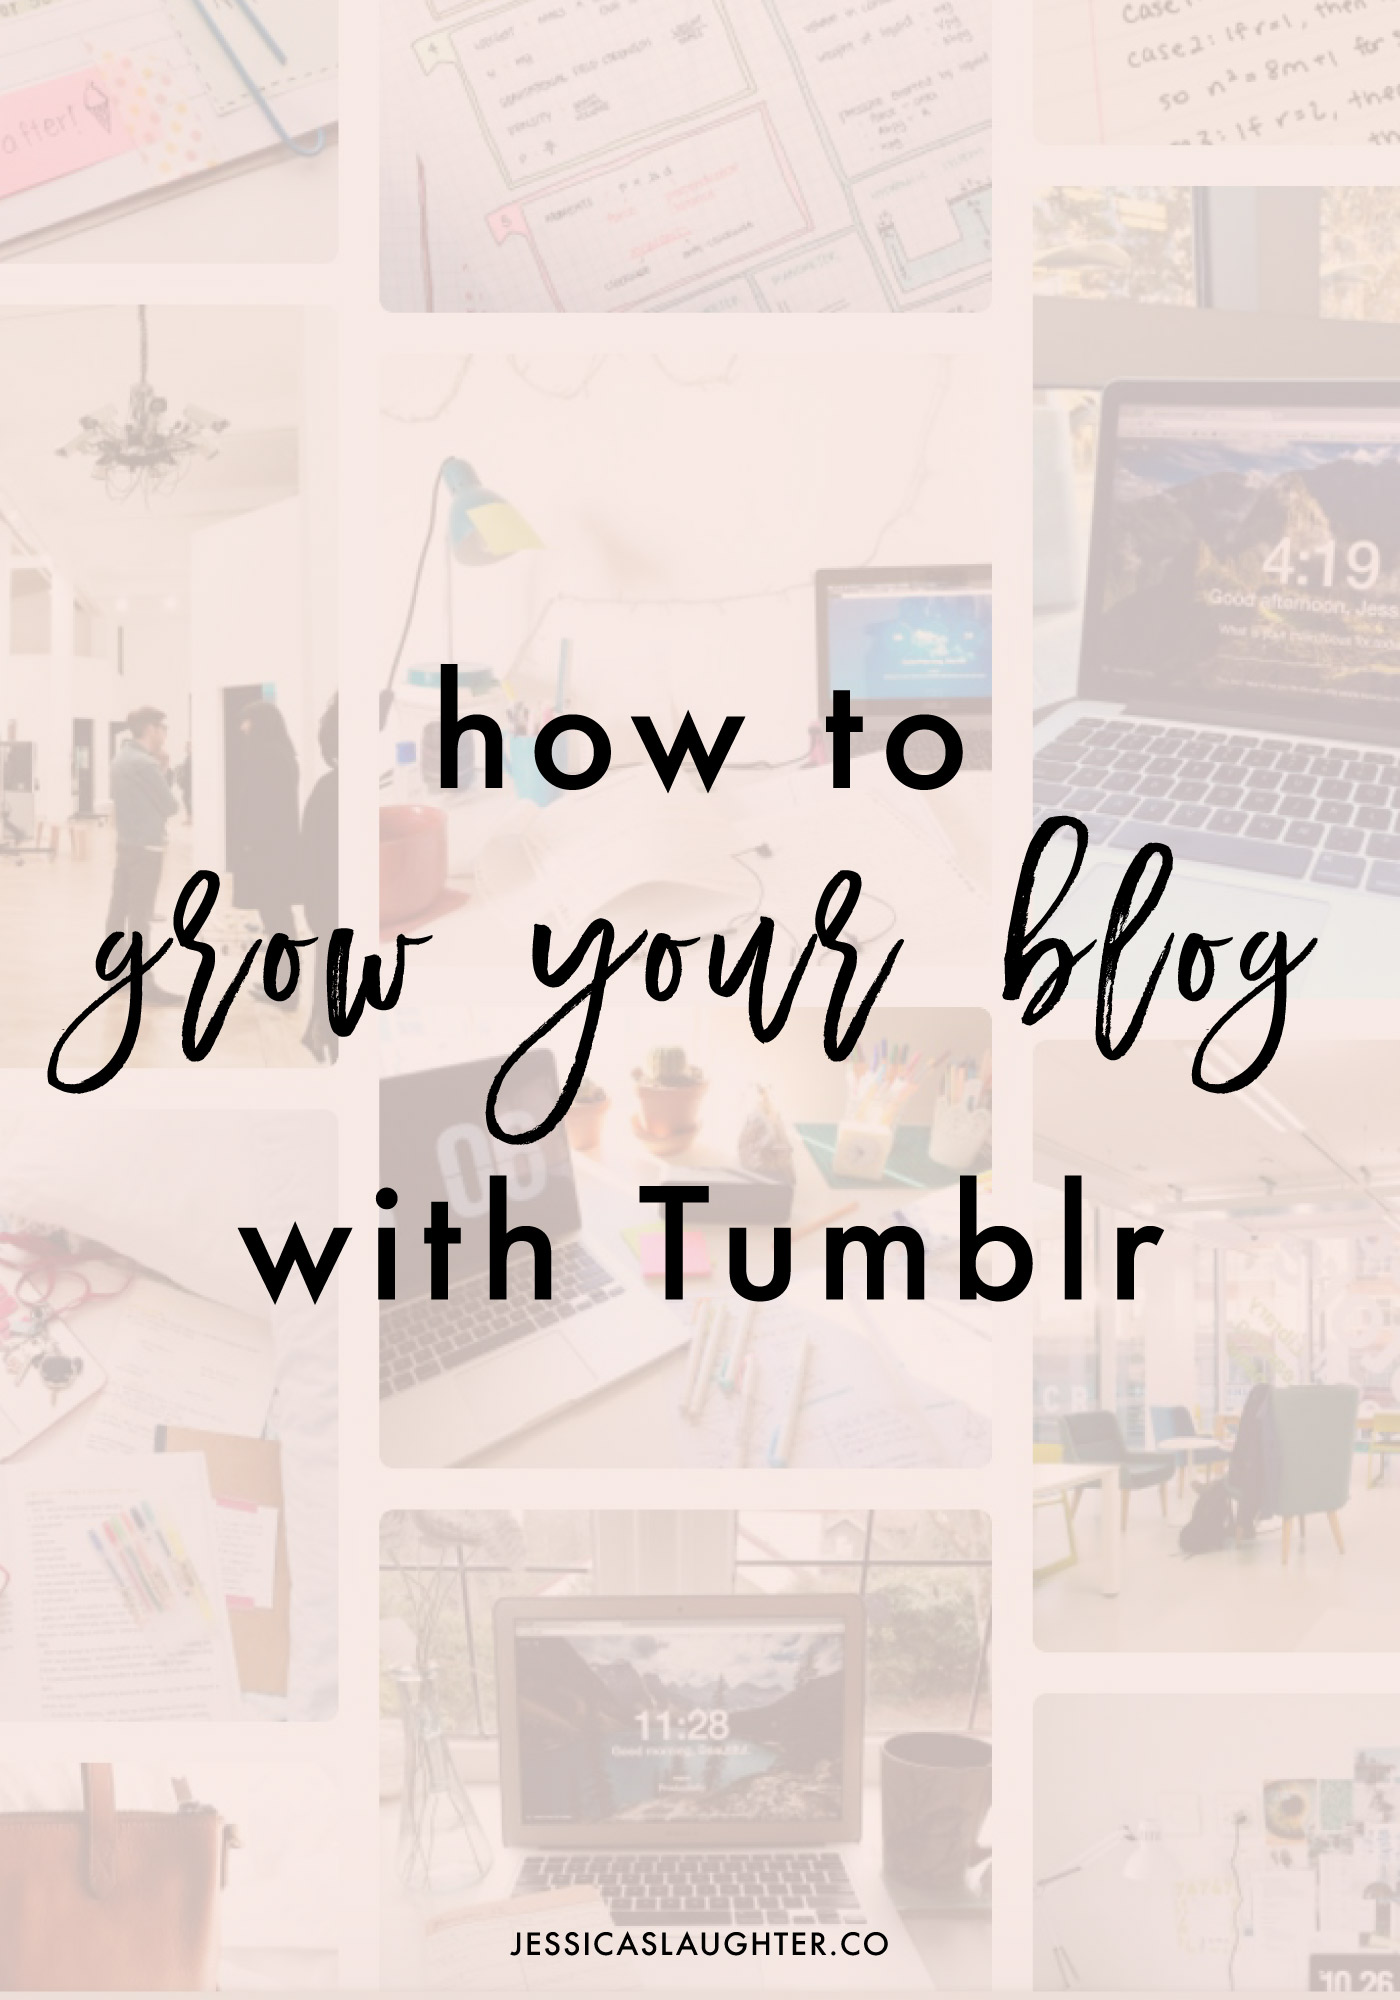 Most bloggers forget about this social platform, but Tumblr has tons of potential for growing your blog!